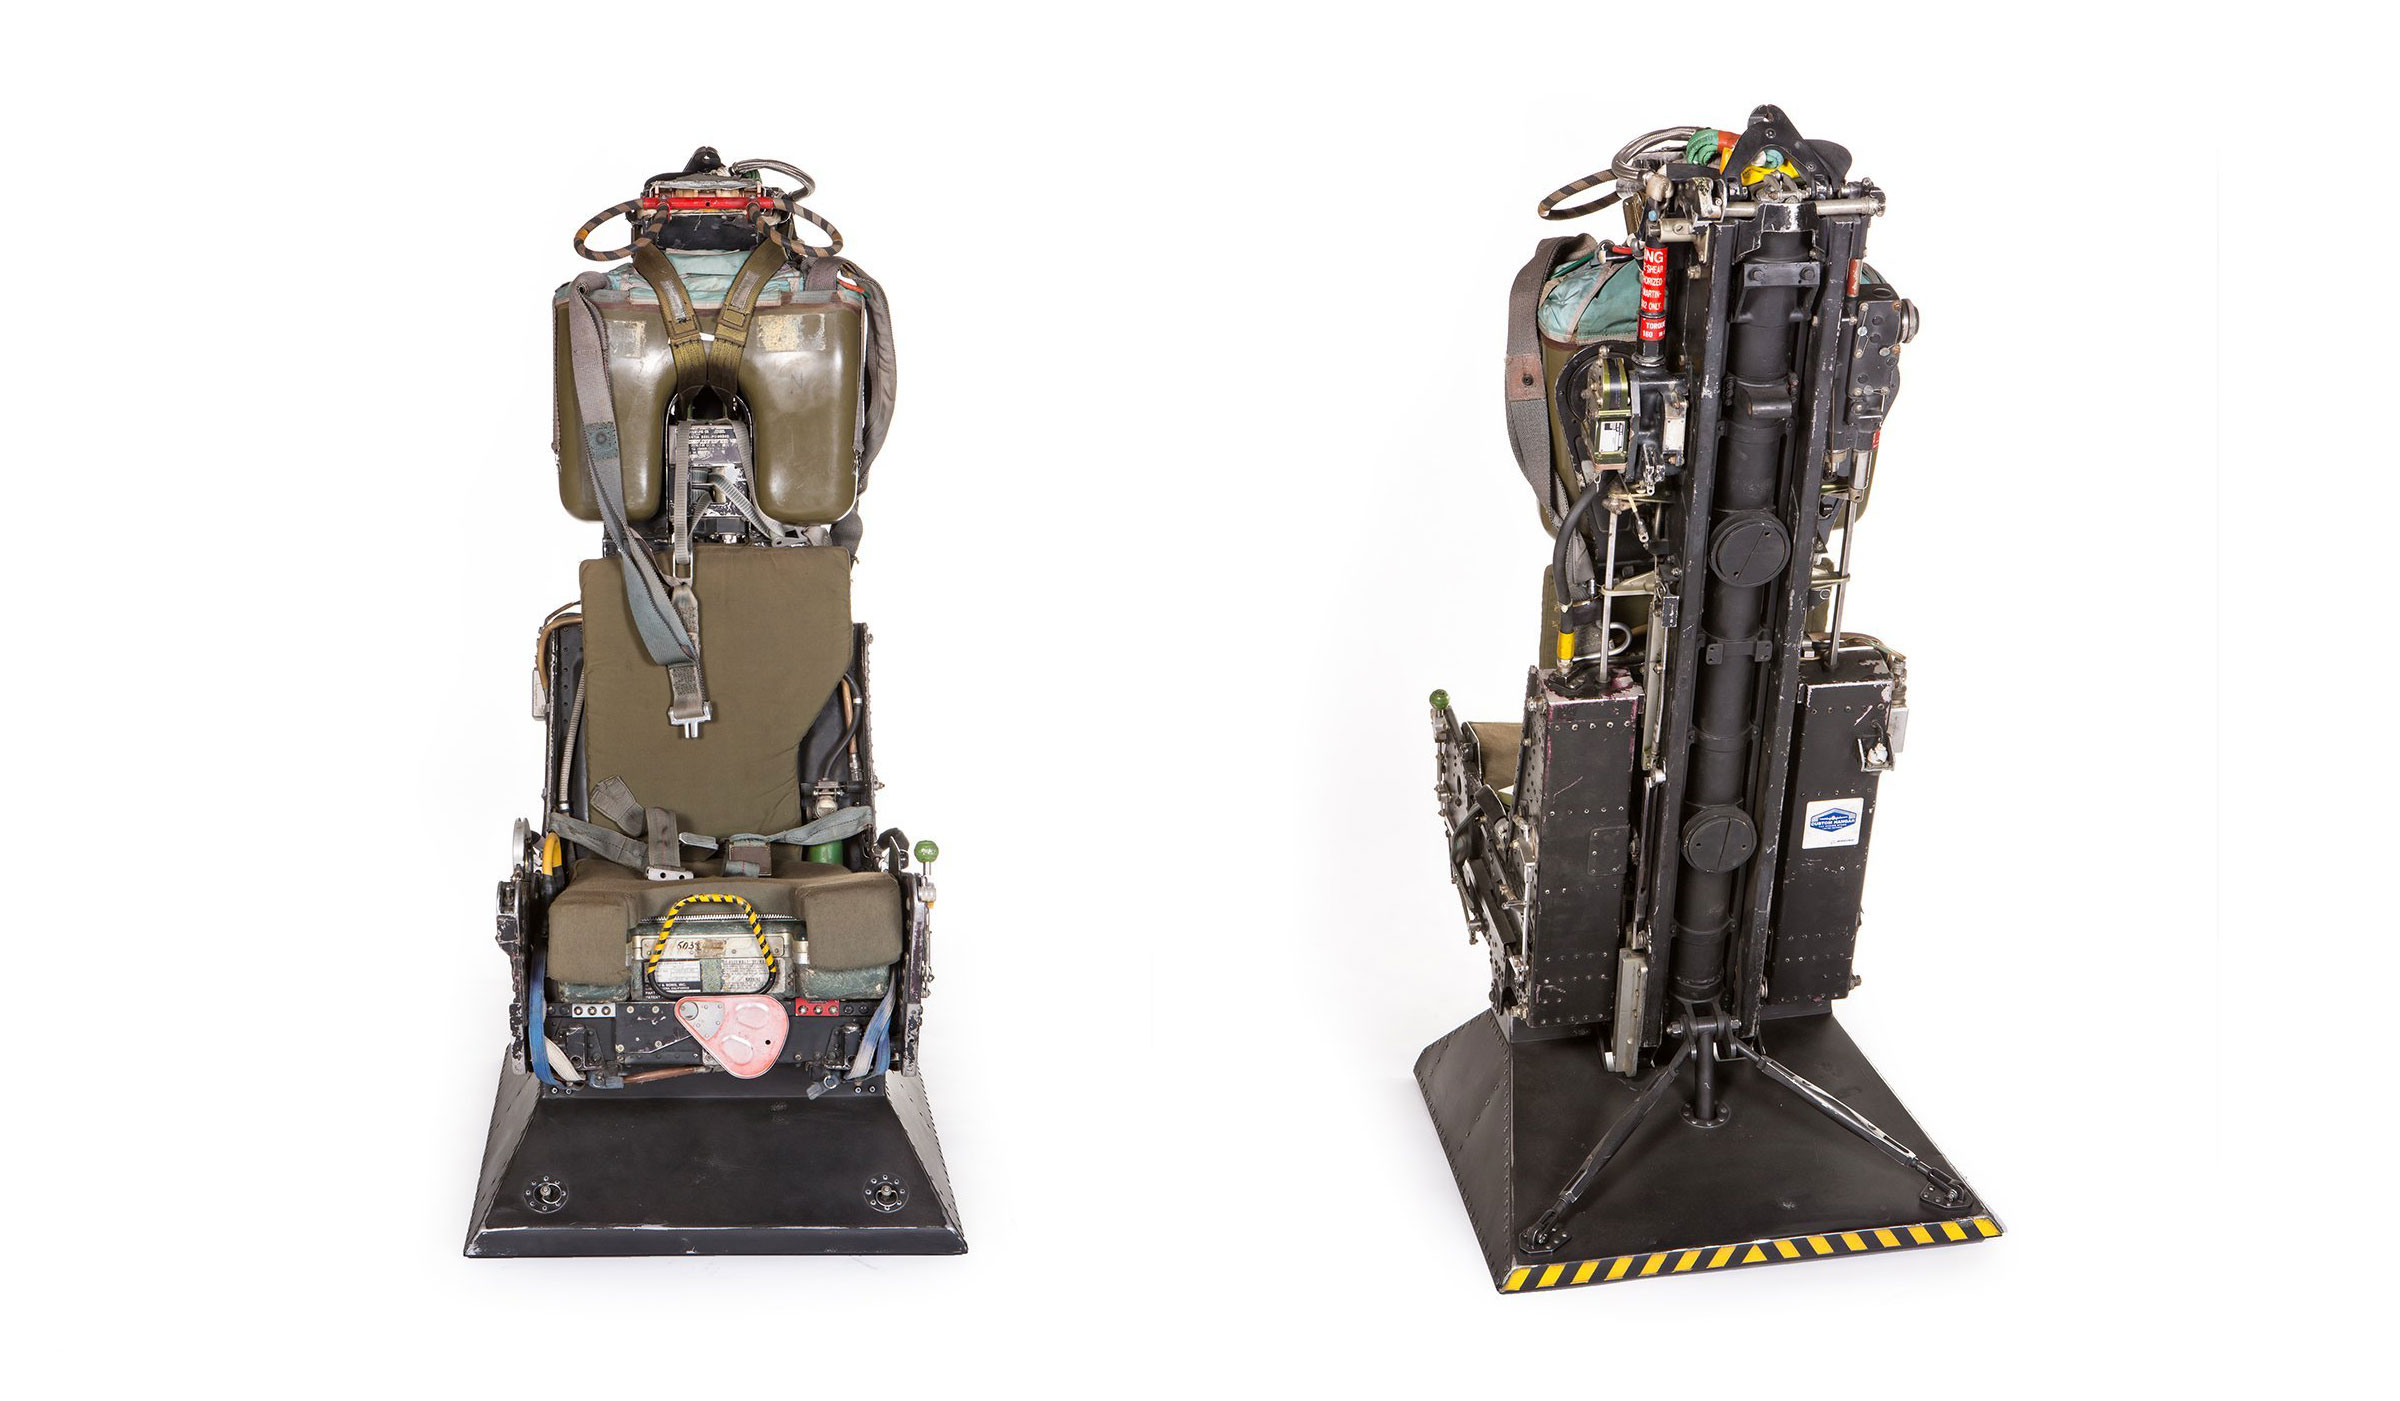 BOEING F4 PHANTOM II EJECTION SEAT